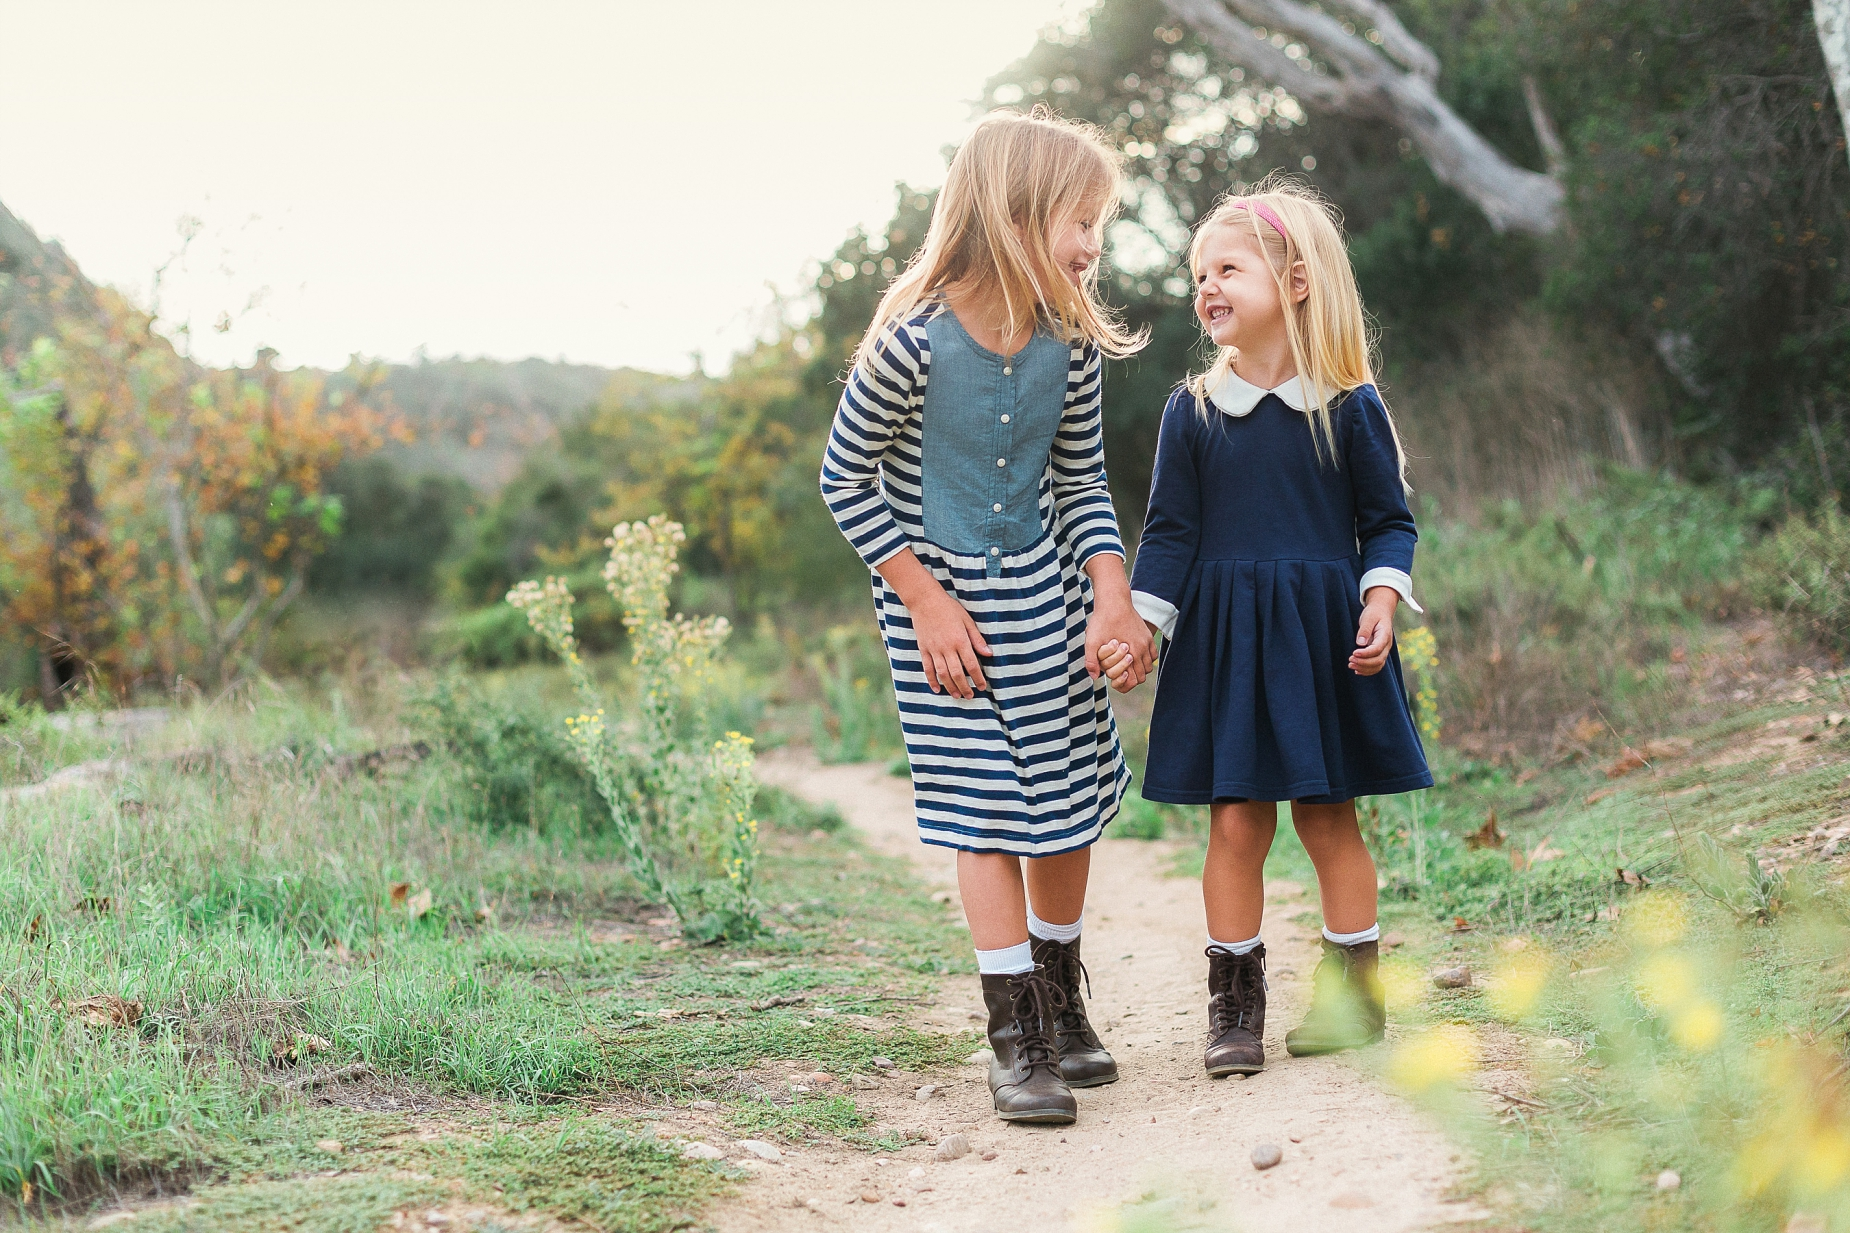 San Diego Family Photographer   Client outdoor nature session guide ...